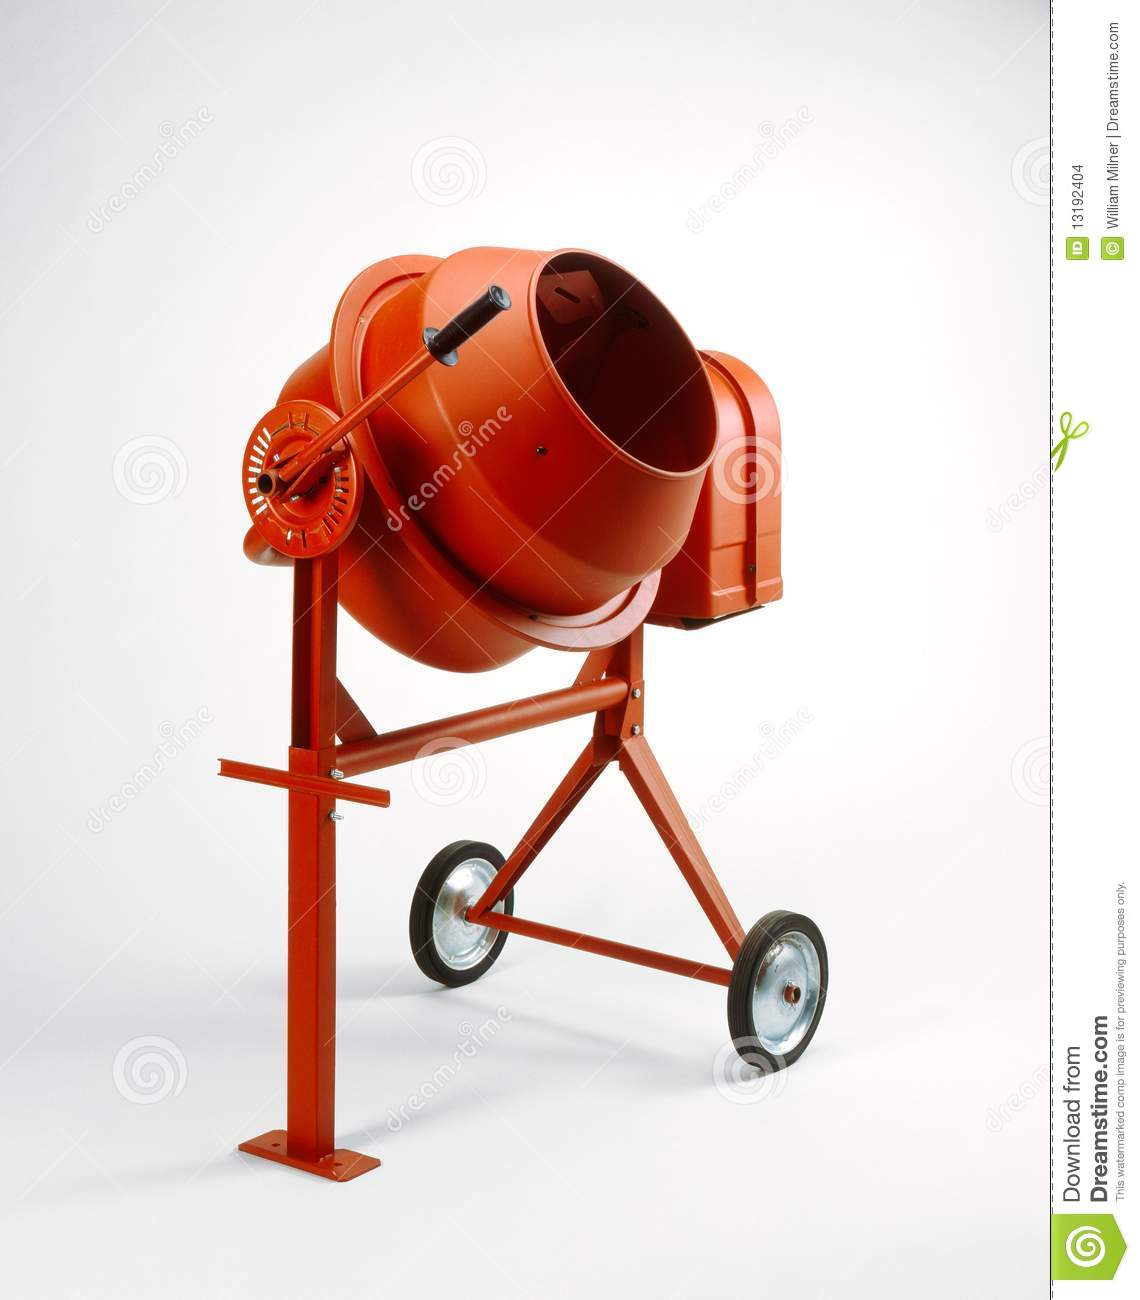 Concrete Mixing Animation : Cement mixer stock images image